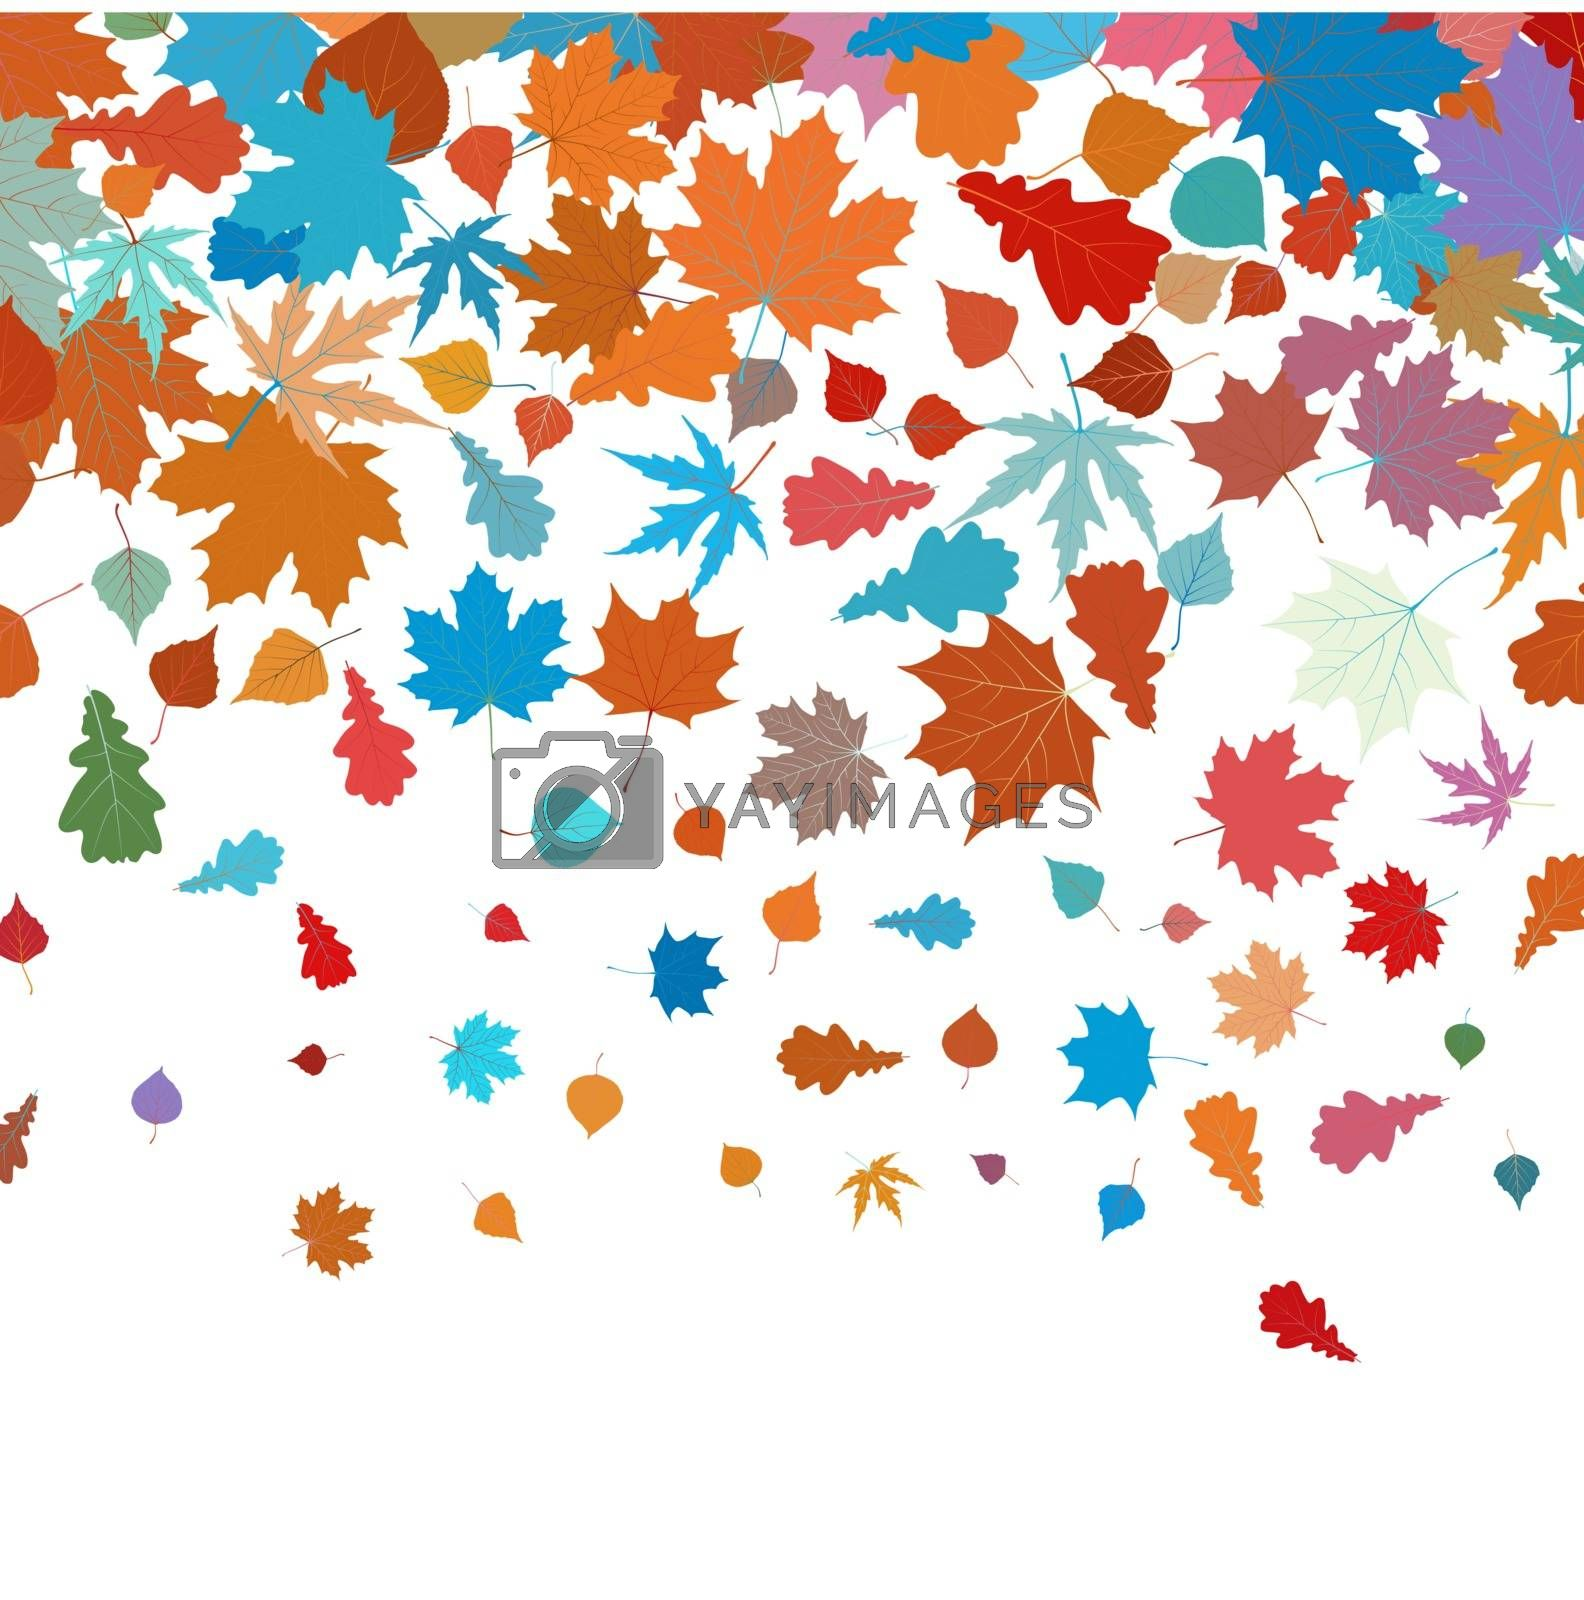 Autumn leafs abstract background with place for your text. EPS 8 vector file included